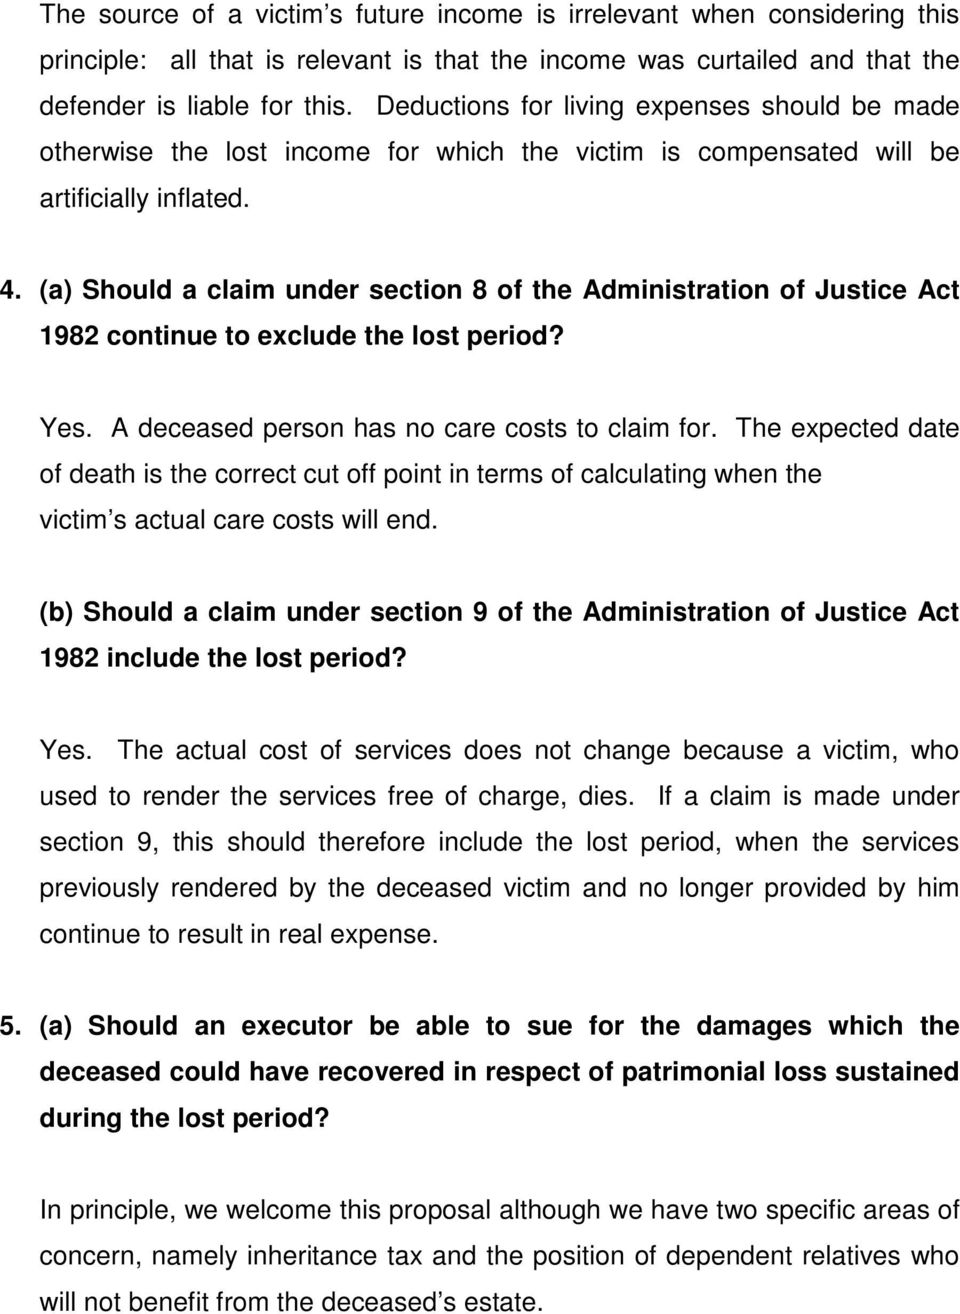 (a) Should a claim under section 8 of the Administration of Justice Act 1982 continue to exclude the lost period? Yes. A deceased person has no care costs to claim for.